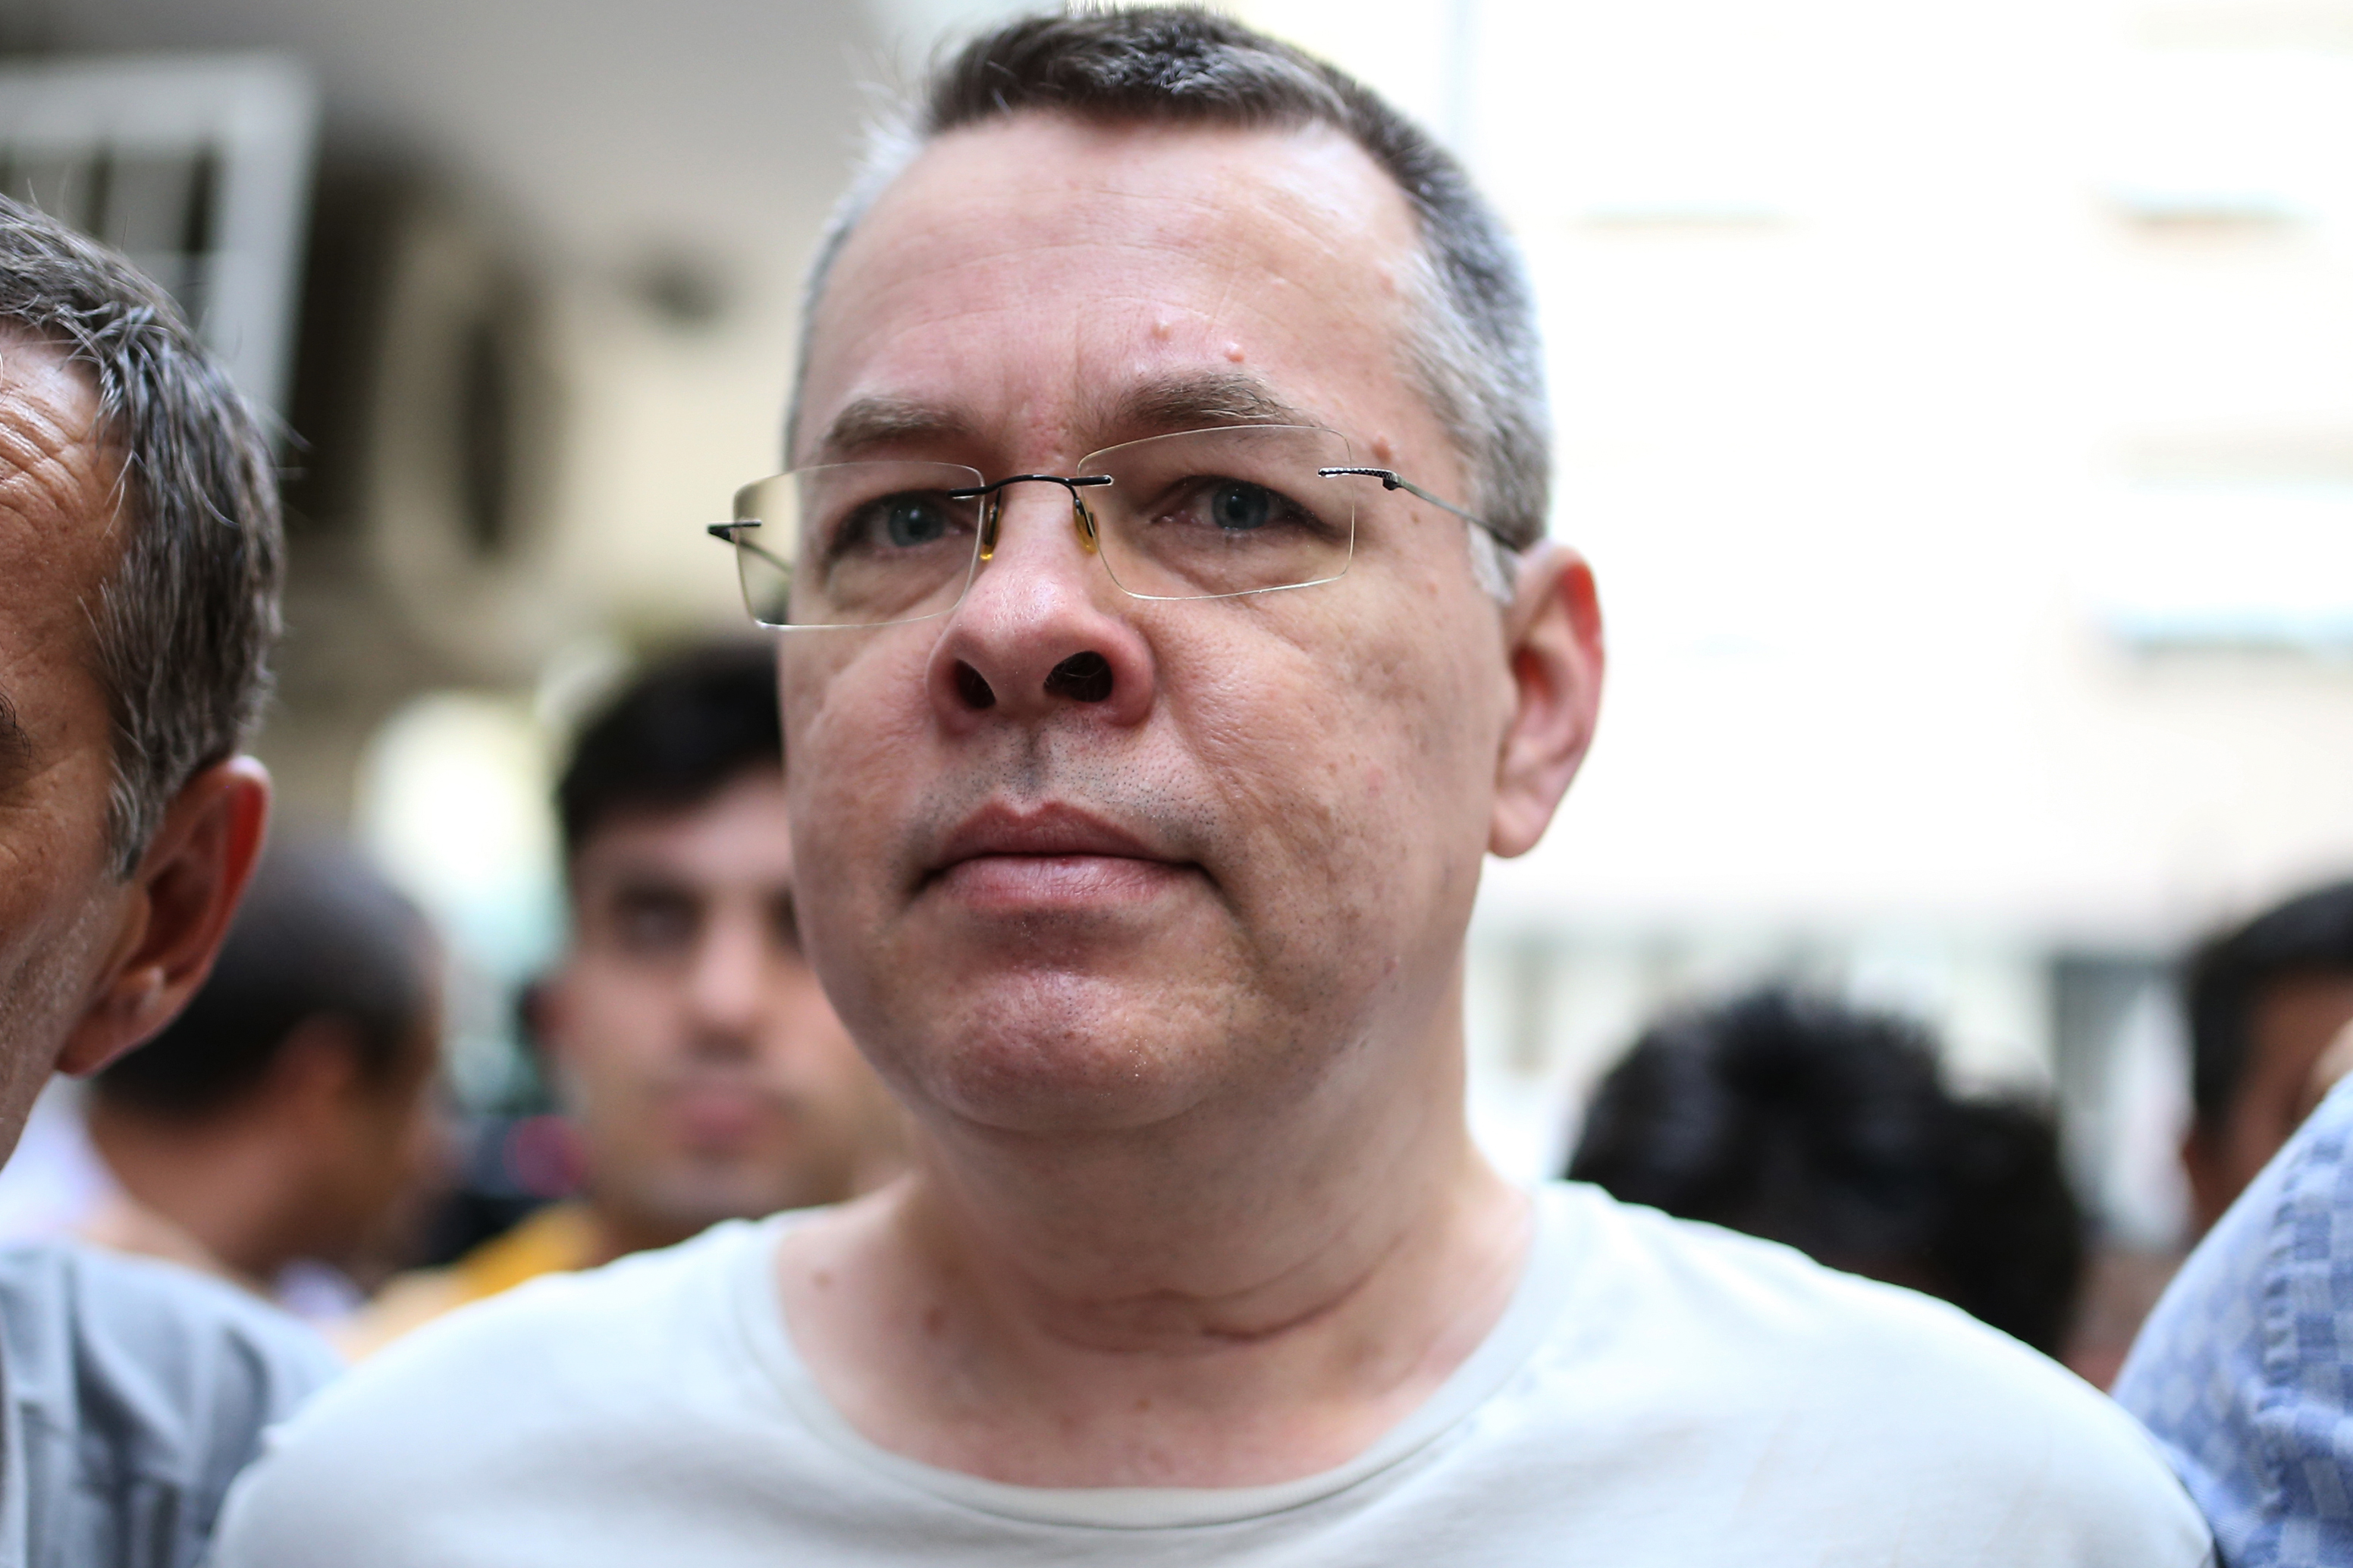 US Pastor Andrew Brunson is the main reason why President Donald Trump threatened to impose sanctions on Turkey on July 26, 2018.